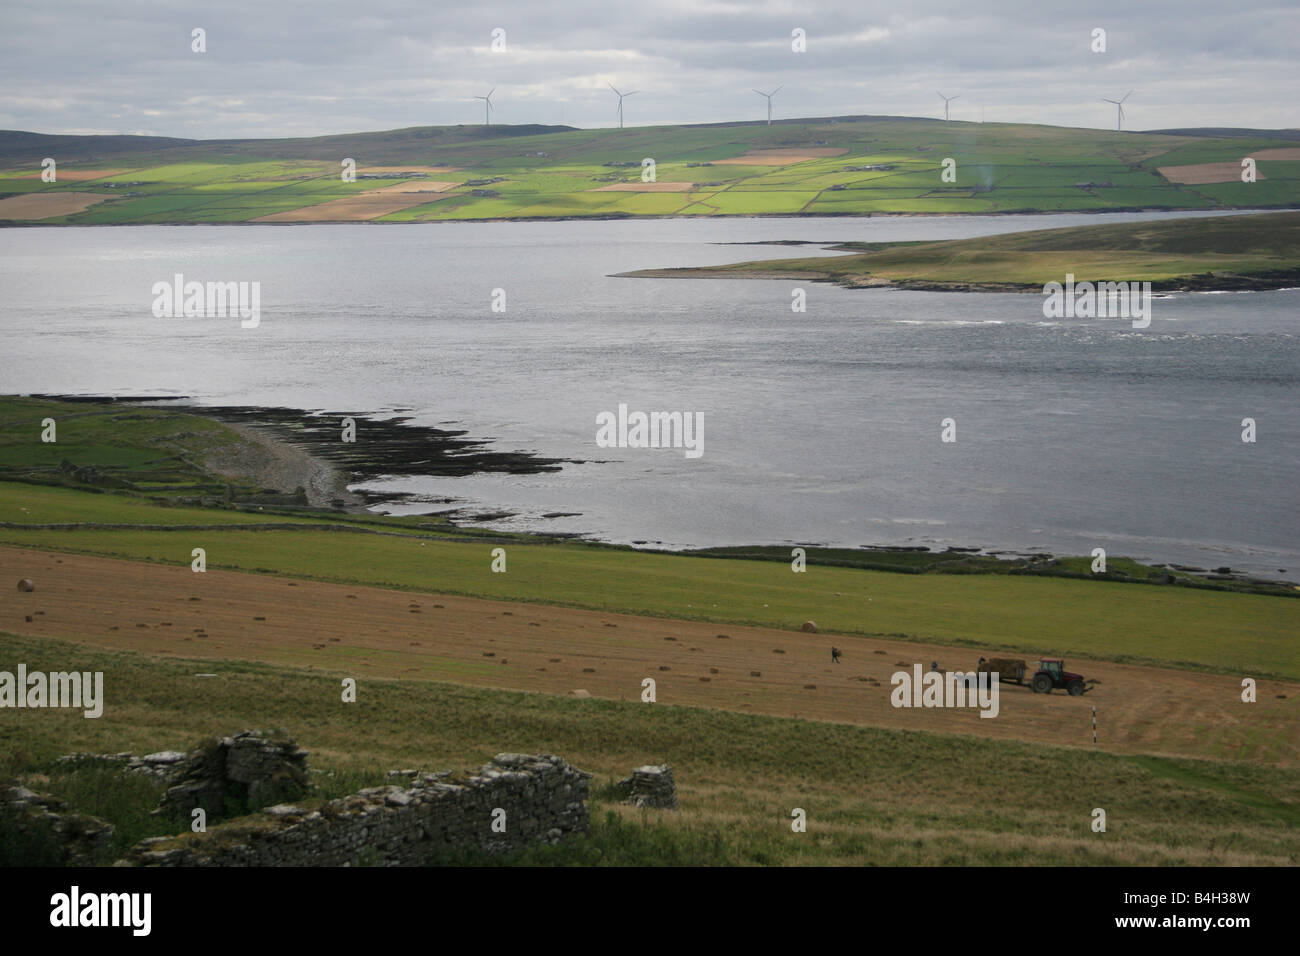 Mainland Orkney across the Eynhallow Sound from the island of Rousay, Orkney Isles, Scotland - Stock Image